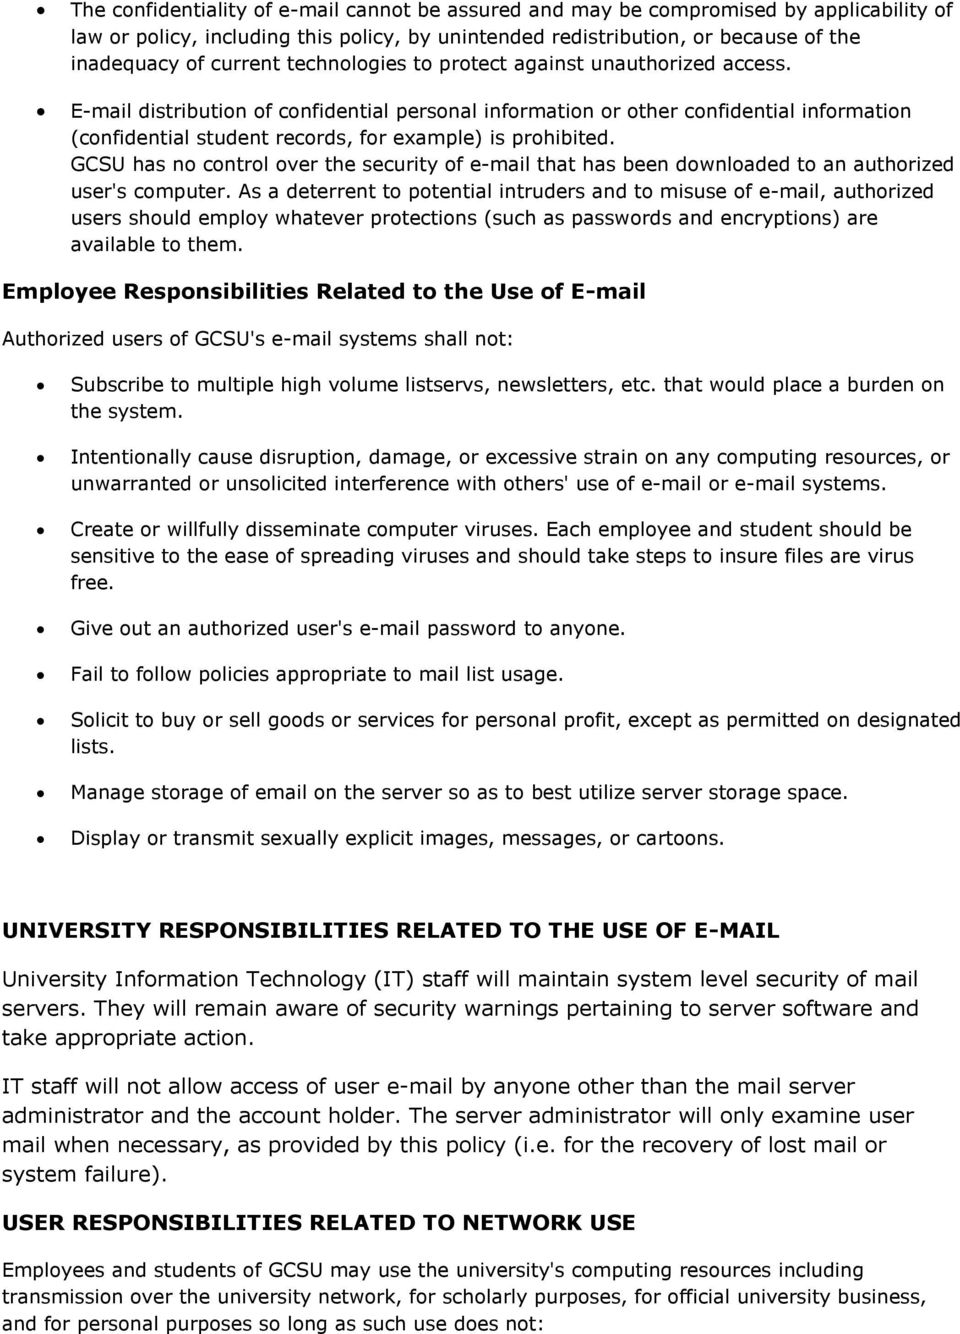 E-mail distribution of confidential personal information or other confidential information (confidential student records, for example) is prohibited.